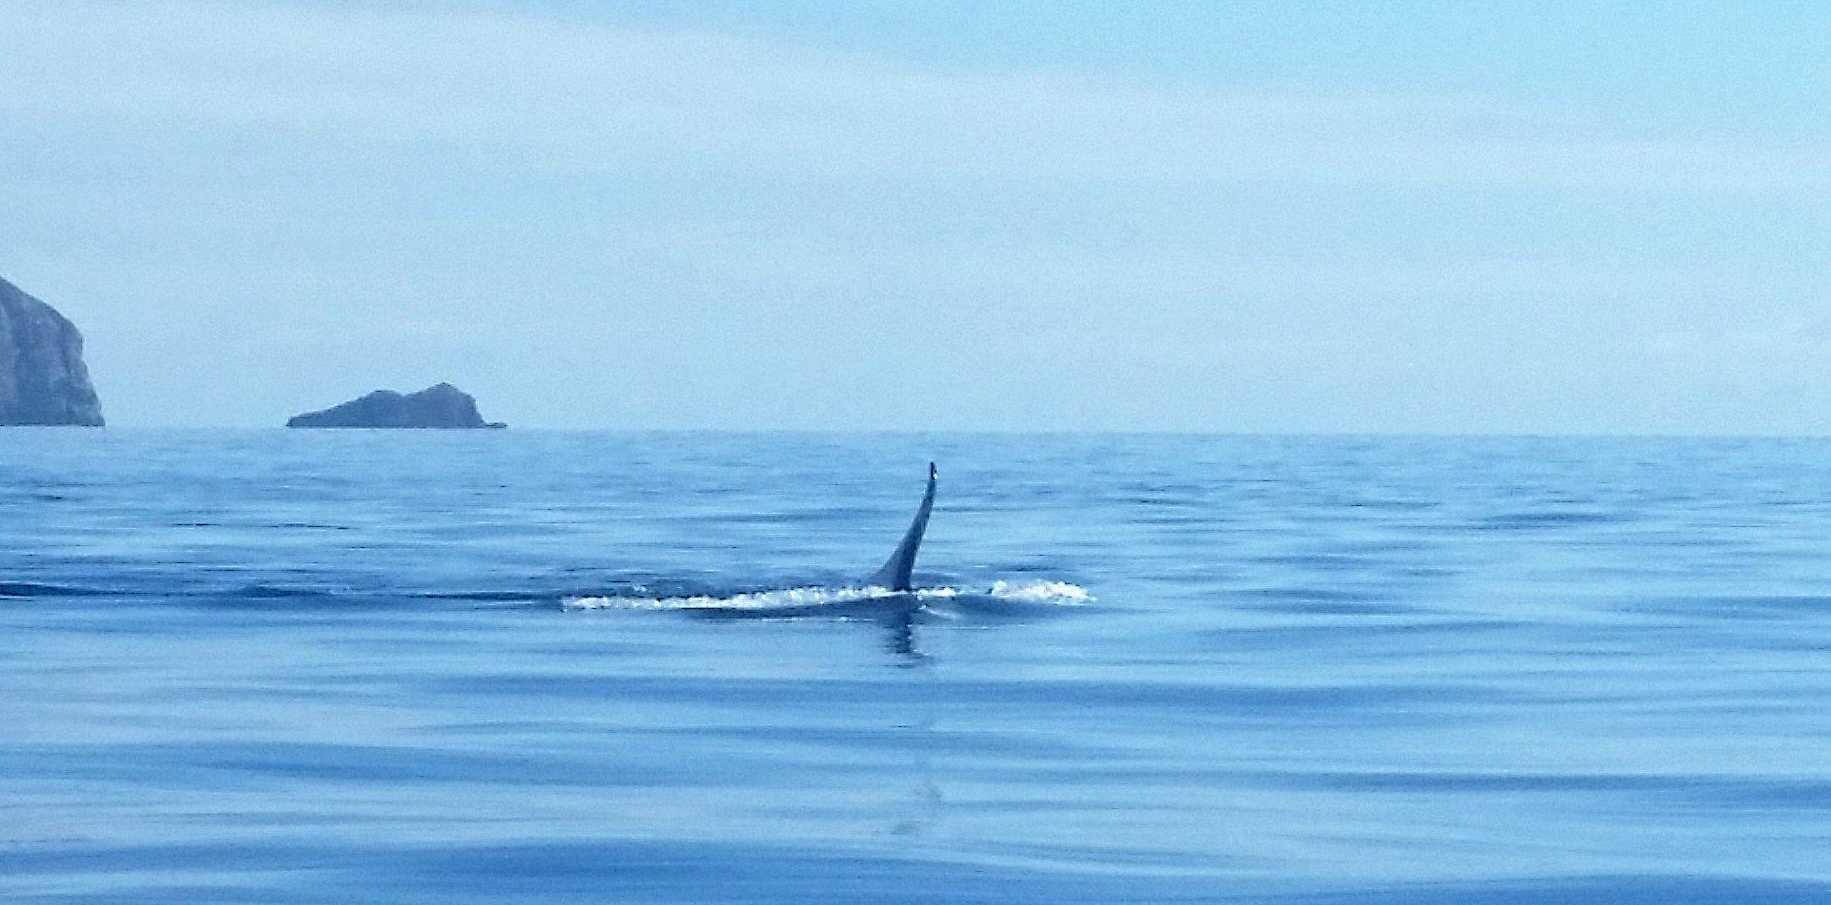 Photographer Angela Mallinson took these photos of whales near the Keppel islands on Sunday phone as I was not prepared to see anything out there and we were definitly not getting too close to them.